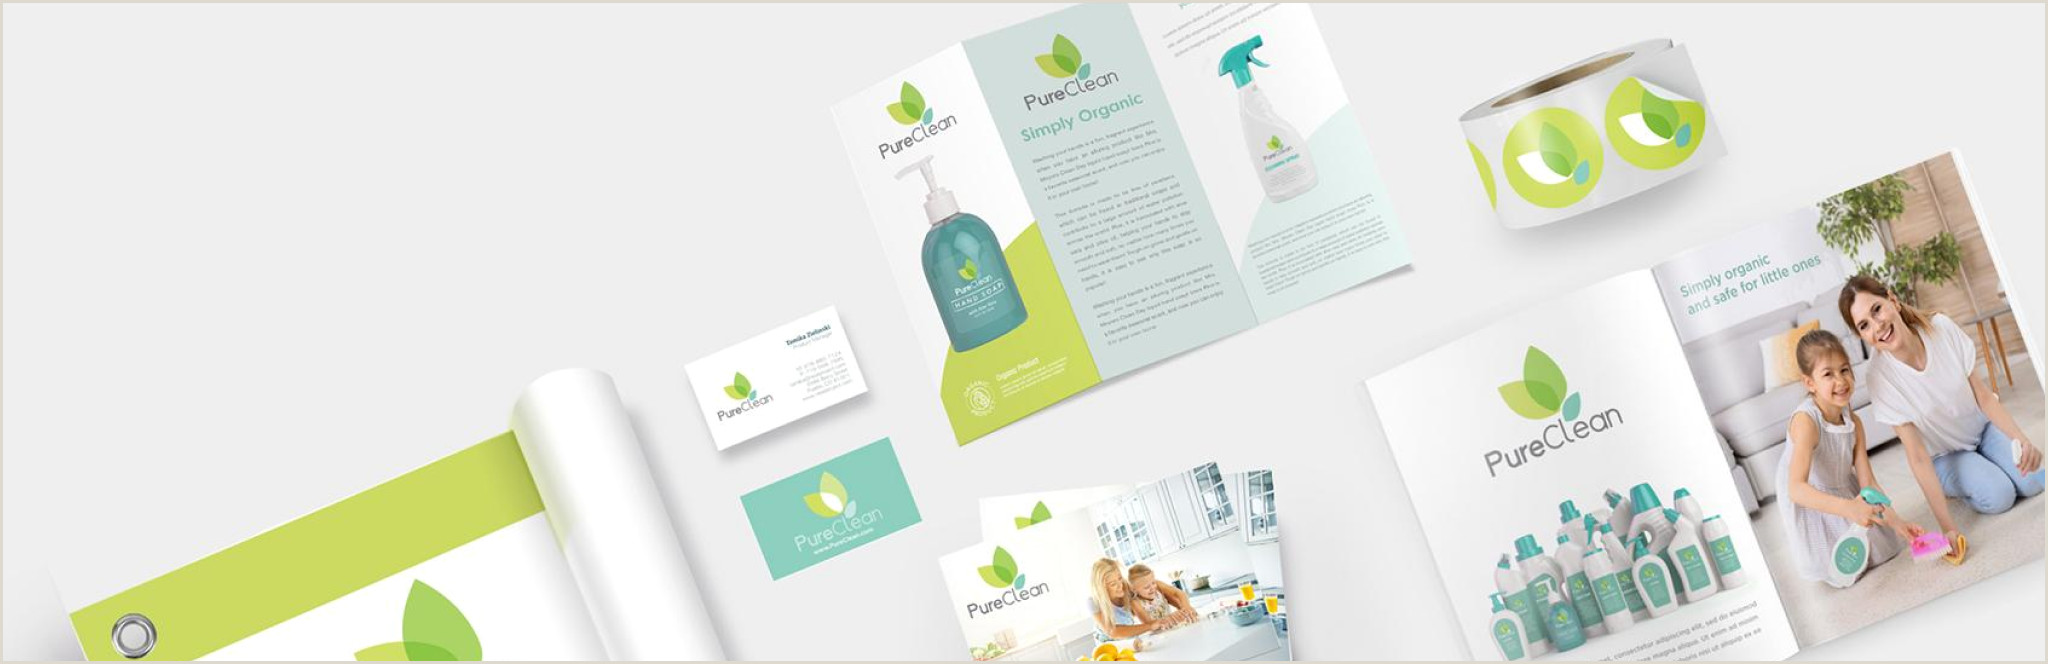 Website On Business Card Printplace High Quality Line Printing Services